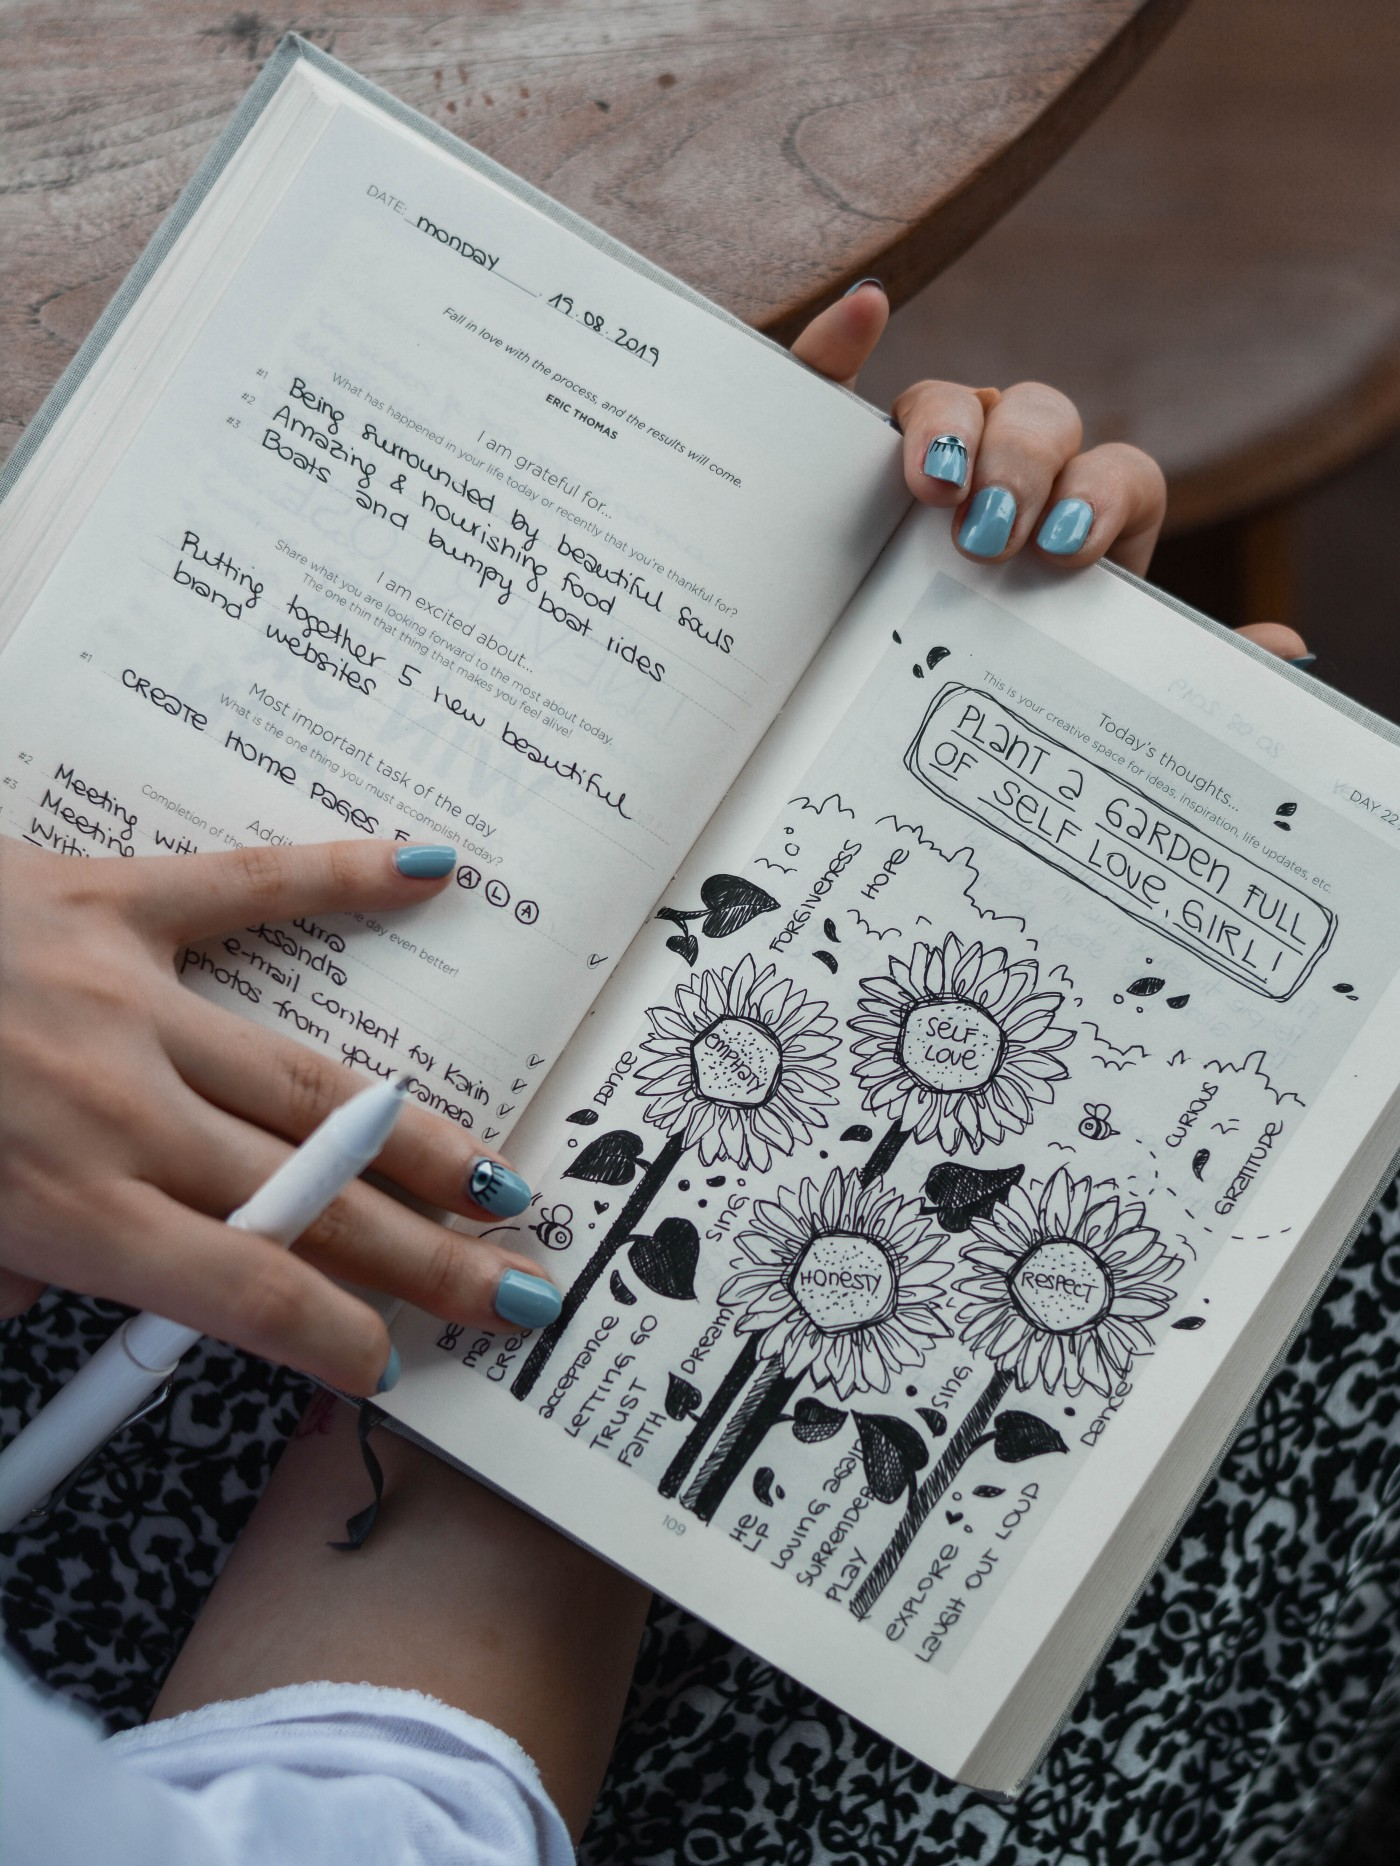 Woman holding an open journal with a drawing about practicing self love.